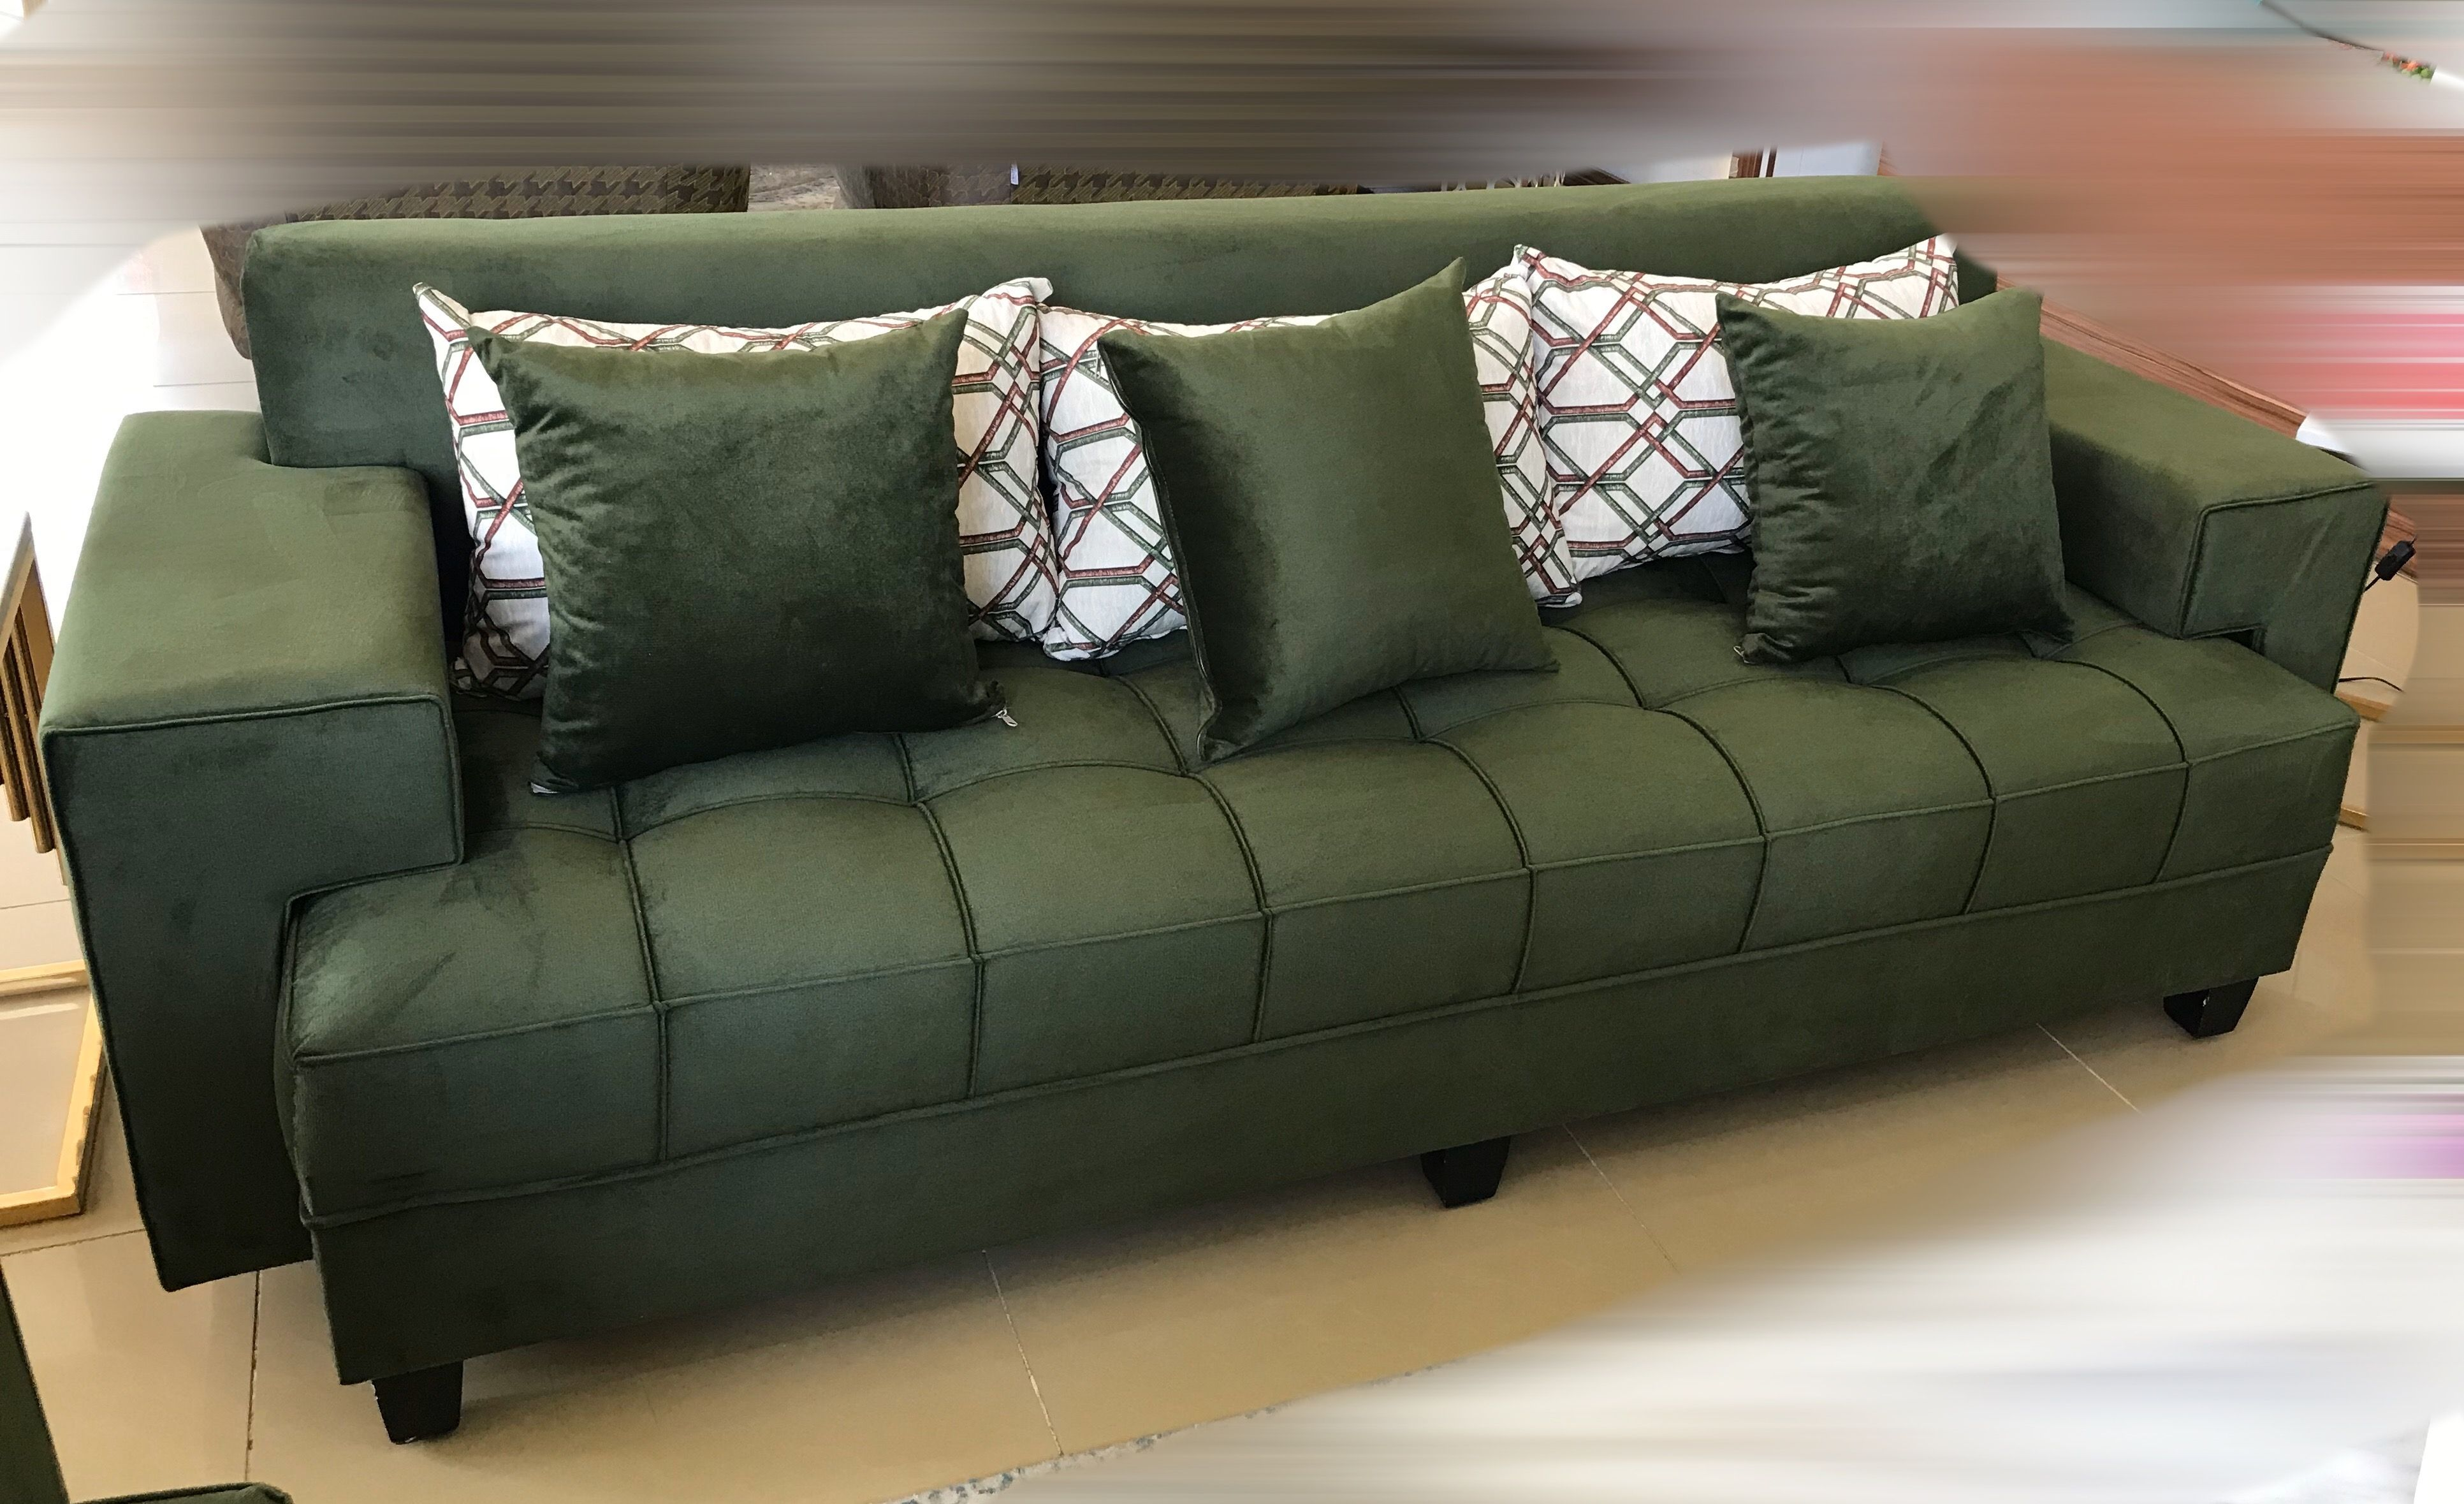 Pin By هوم برونز On اطقم كنب Furniture Home Home Decor